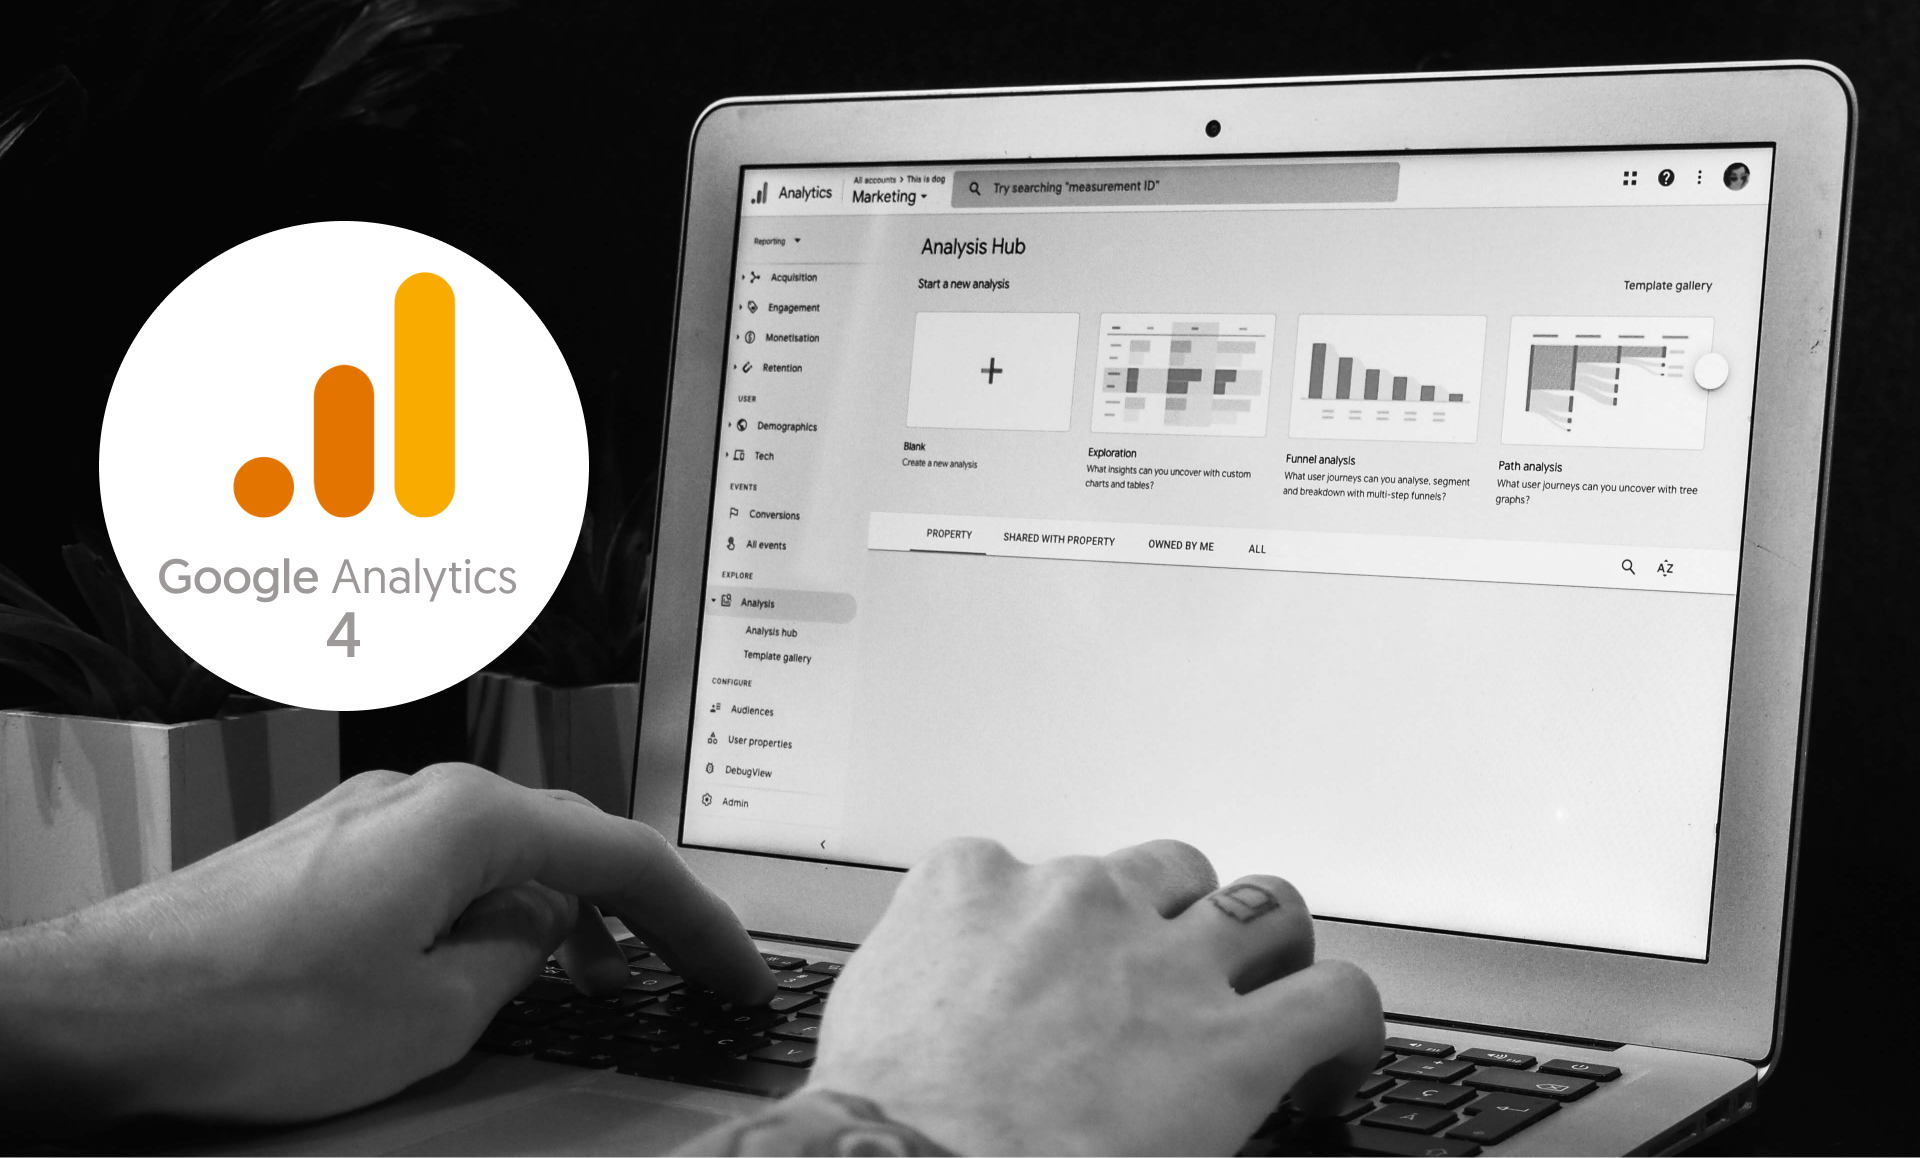 How to Connect Google Analytics 4 to any Warehouse or BI tool